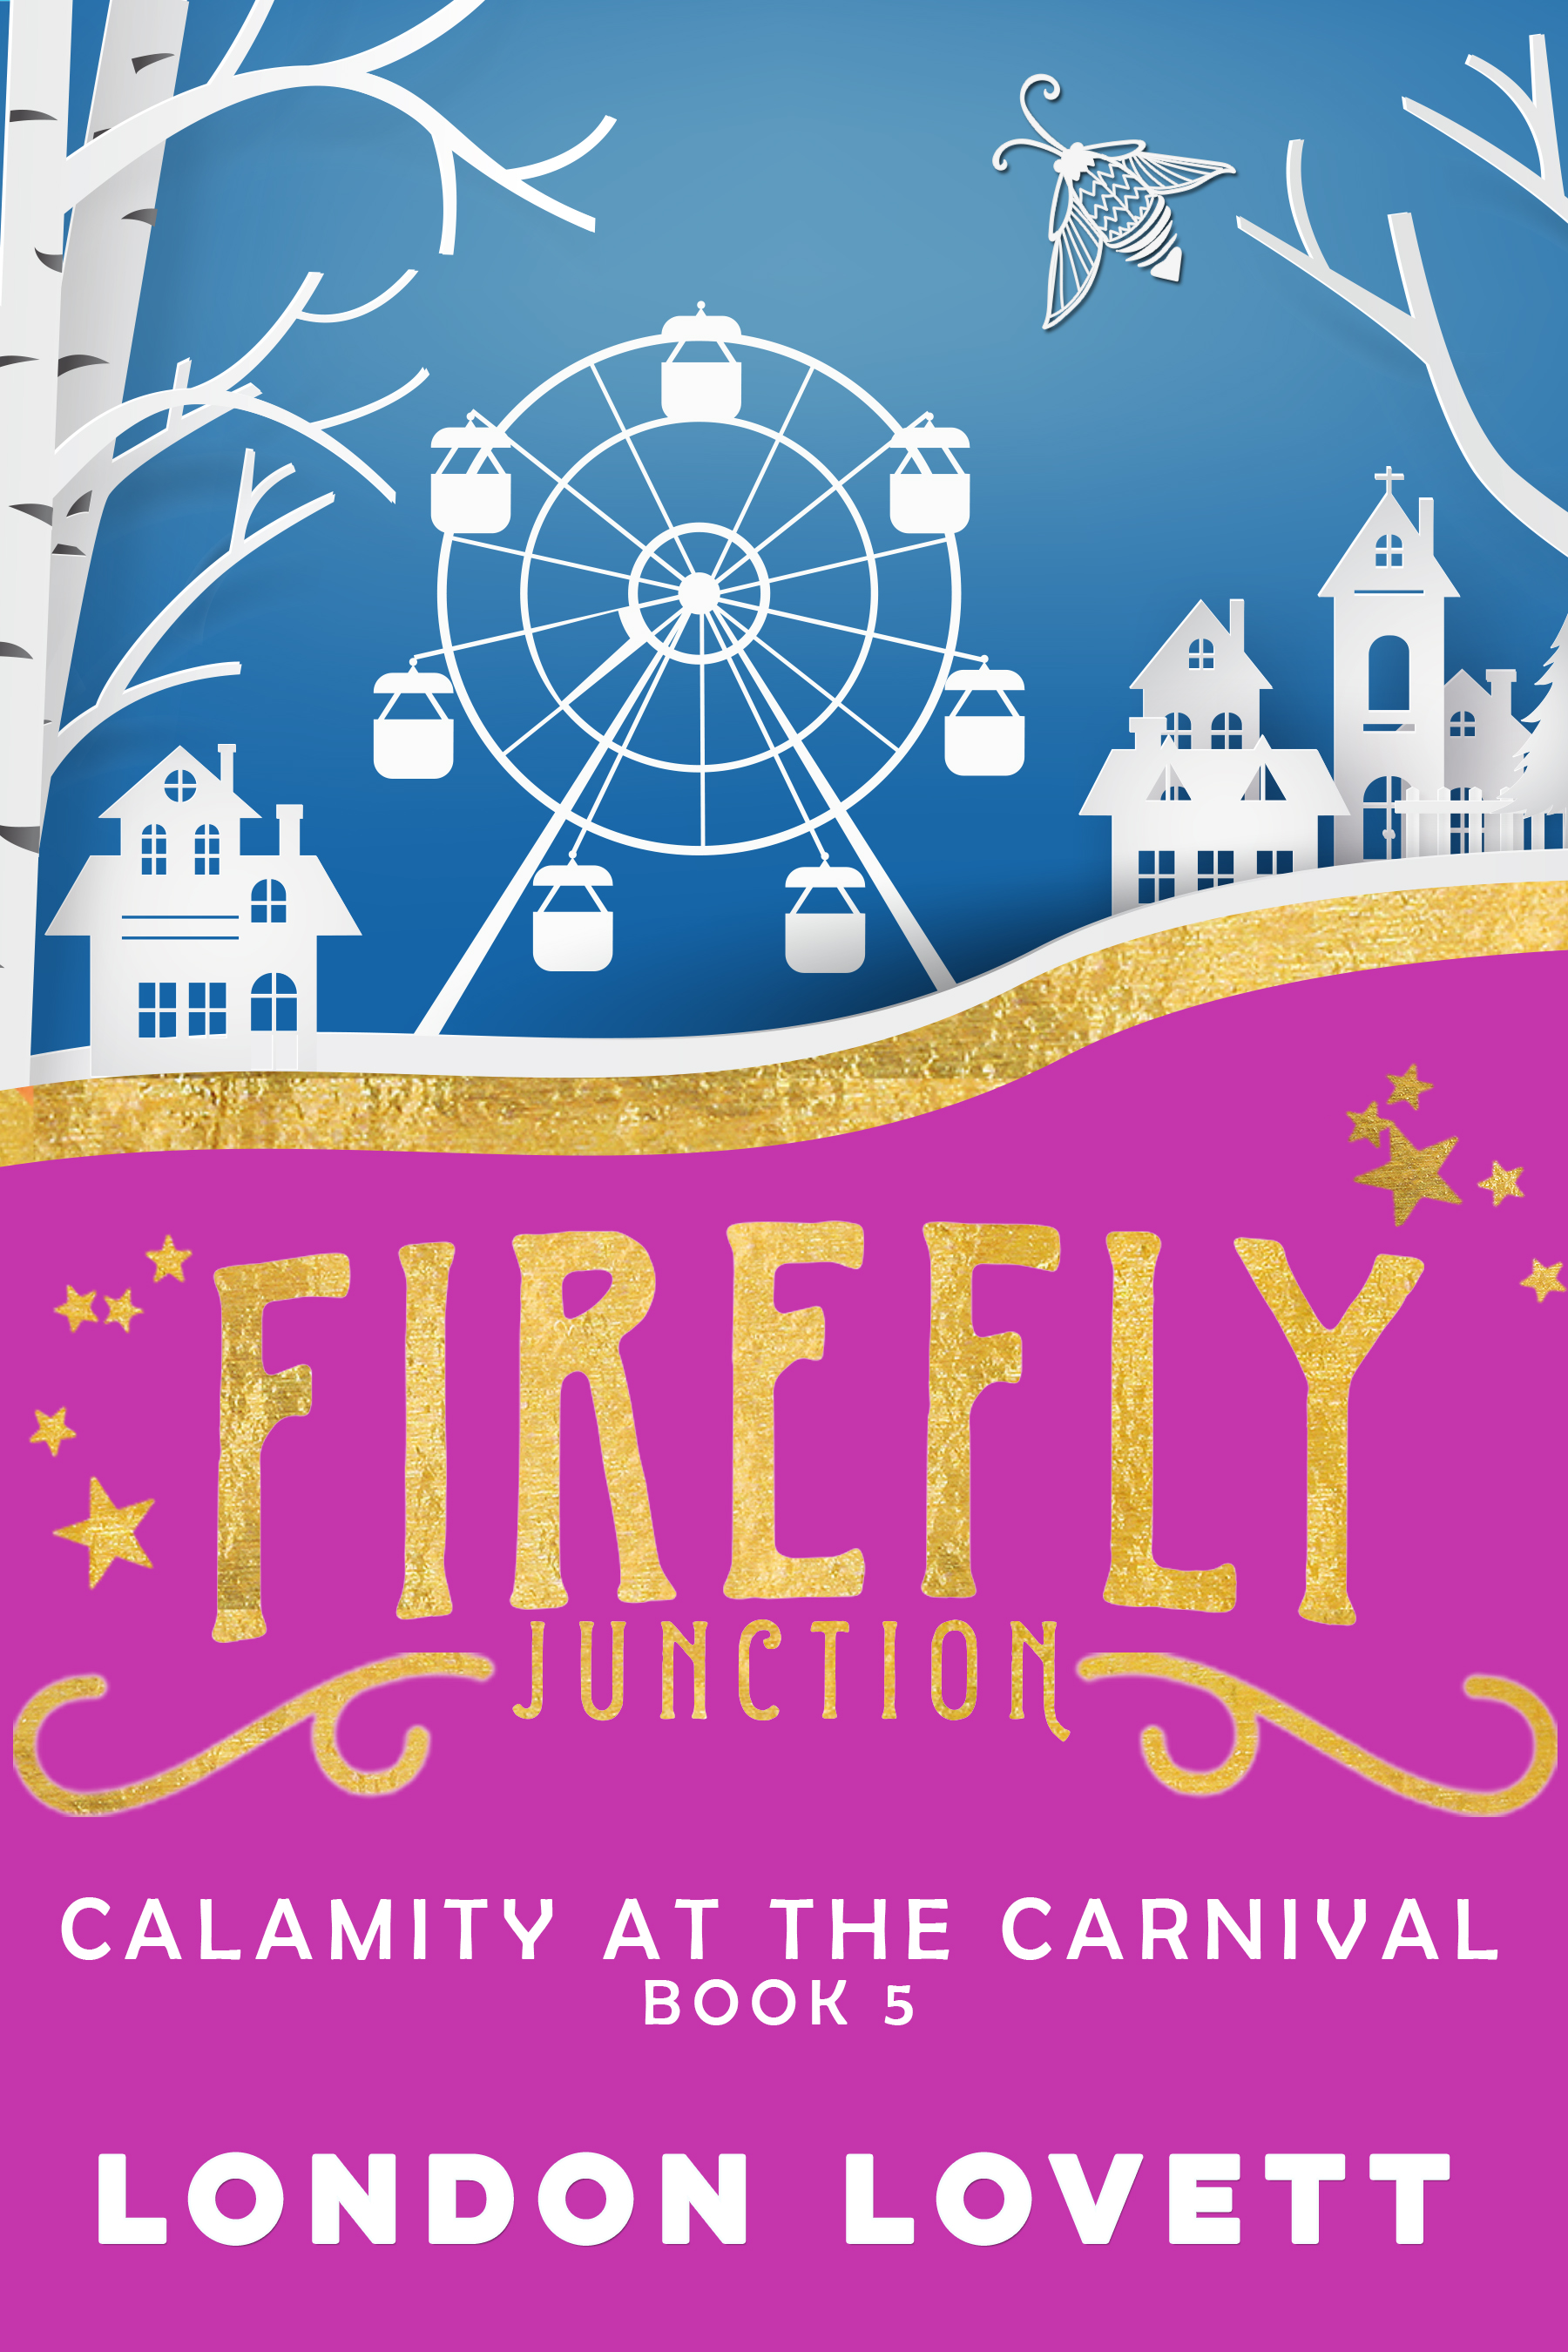 Calamity at the Carnival - Spring is in the air. Flowers are blooming, birds are singing, Jackson's kisses keep coming, and despite the occasional moodiness of her ghostly housemate, Sunni is looking forward to the season.It's spring break in Firefly Junction and the Stockton Traveling Carnival has come to town. Sunni finds herself saddled with an uninspiring story assignment. But in between the mix of sugary carnival treats, scream-inducing rides and timeless arcade games, someone murders Madame Cherise, the fortune teller, and Sunni's assignment takes a wild turn.Read on: Amazon iBooks Nook Kobo Google